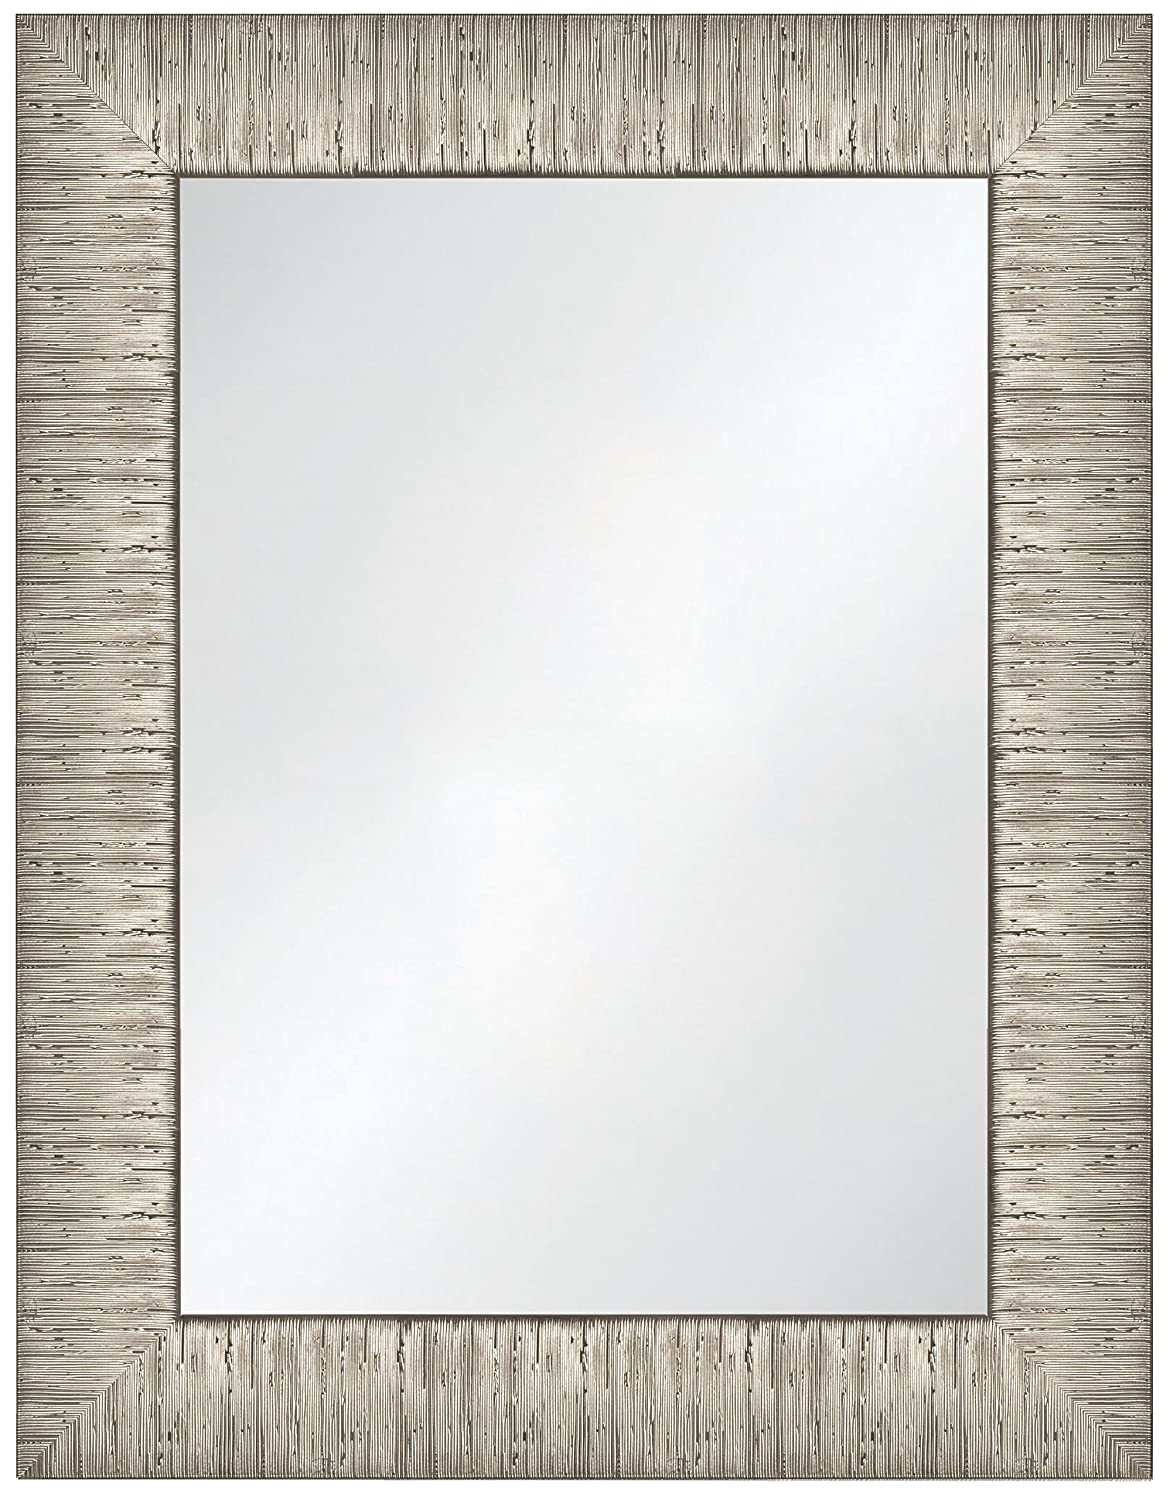 Waterford Mirror Innova Collection from Home Selections - 50x155cm Decorative Full Length Wall Mirror